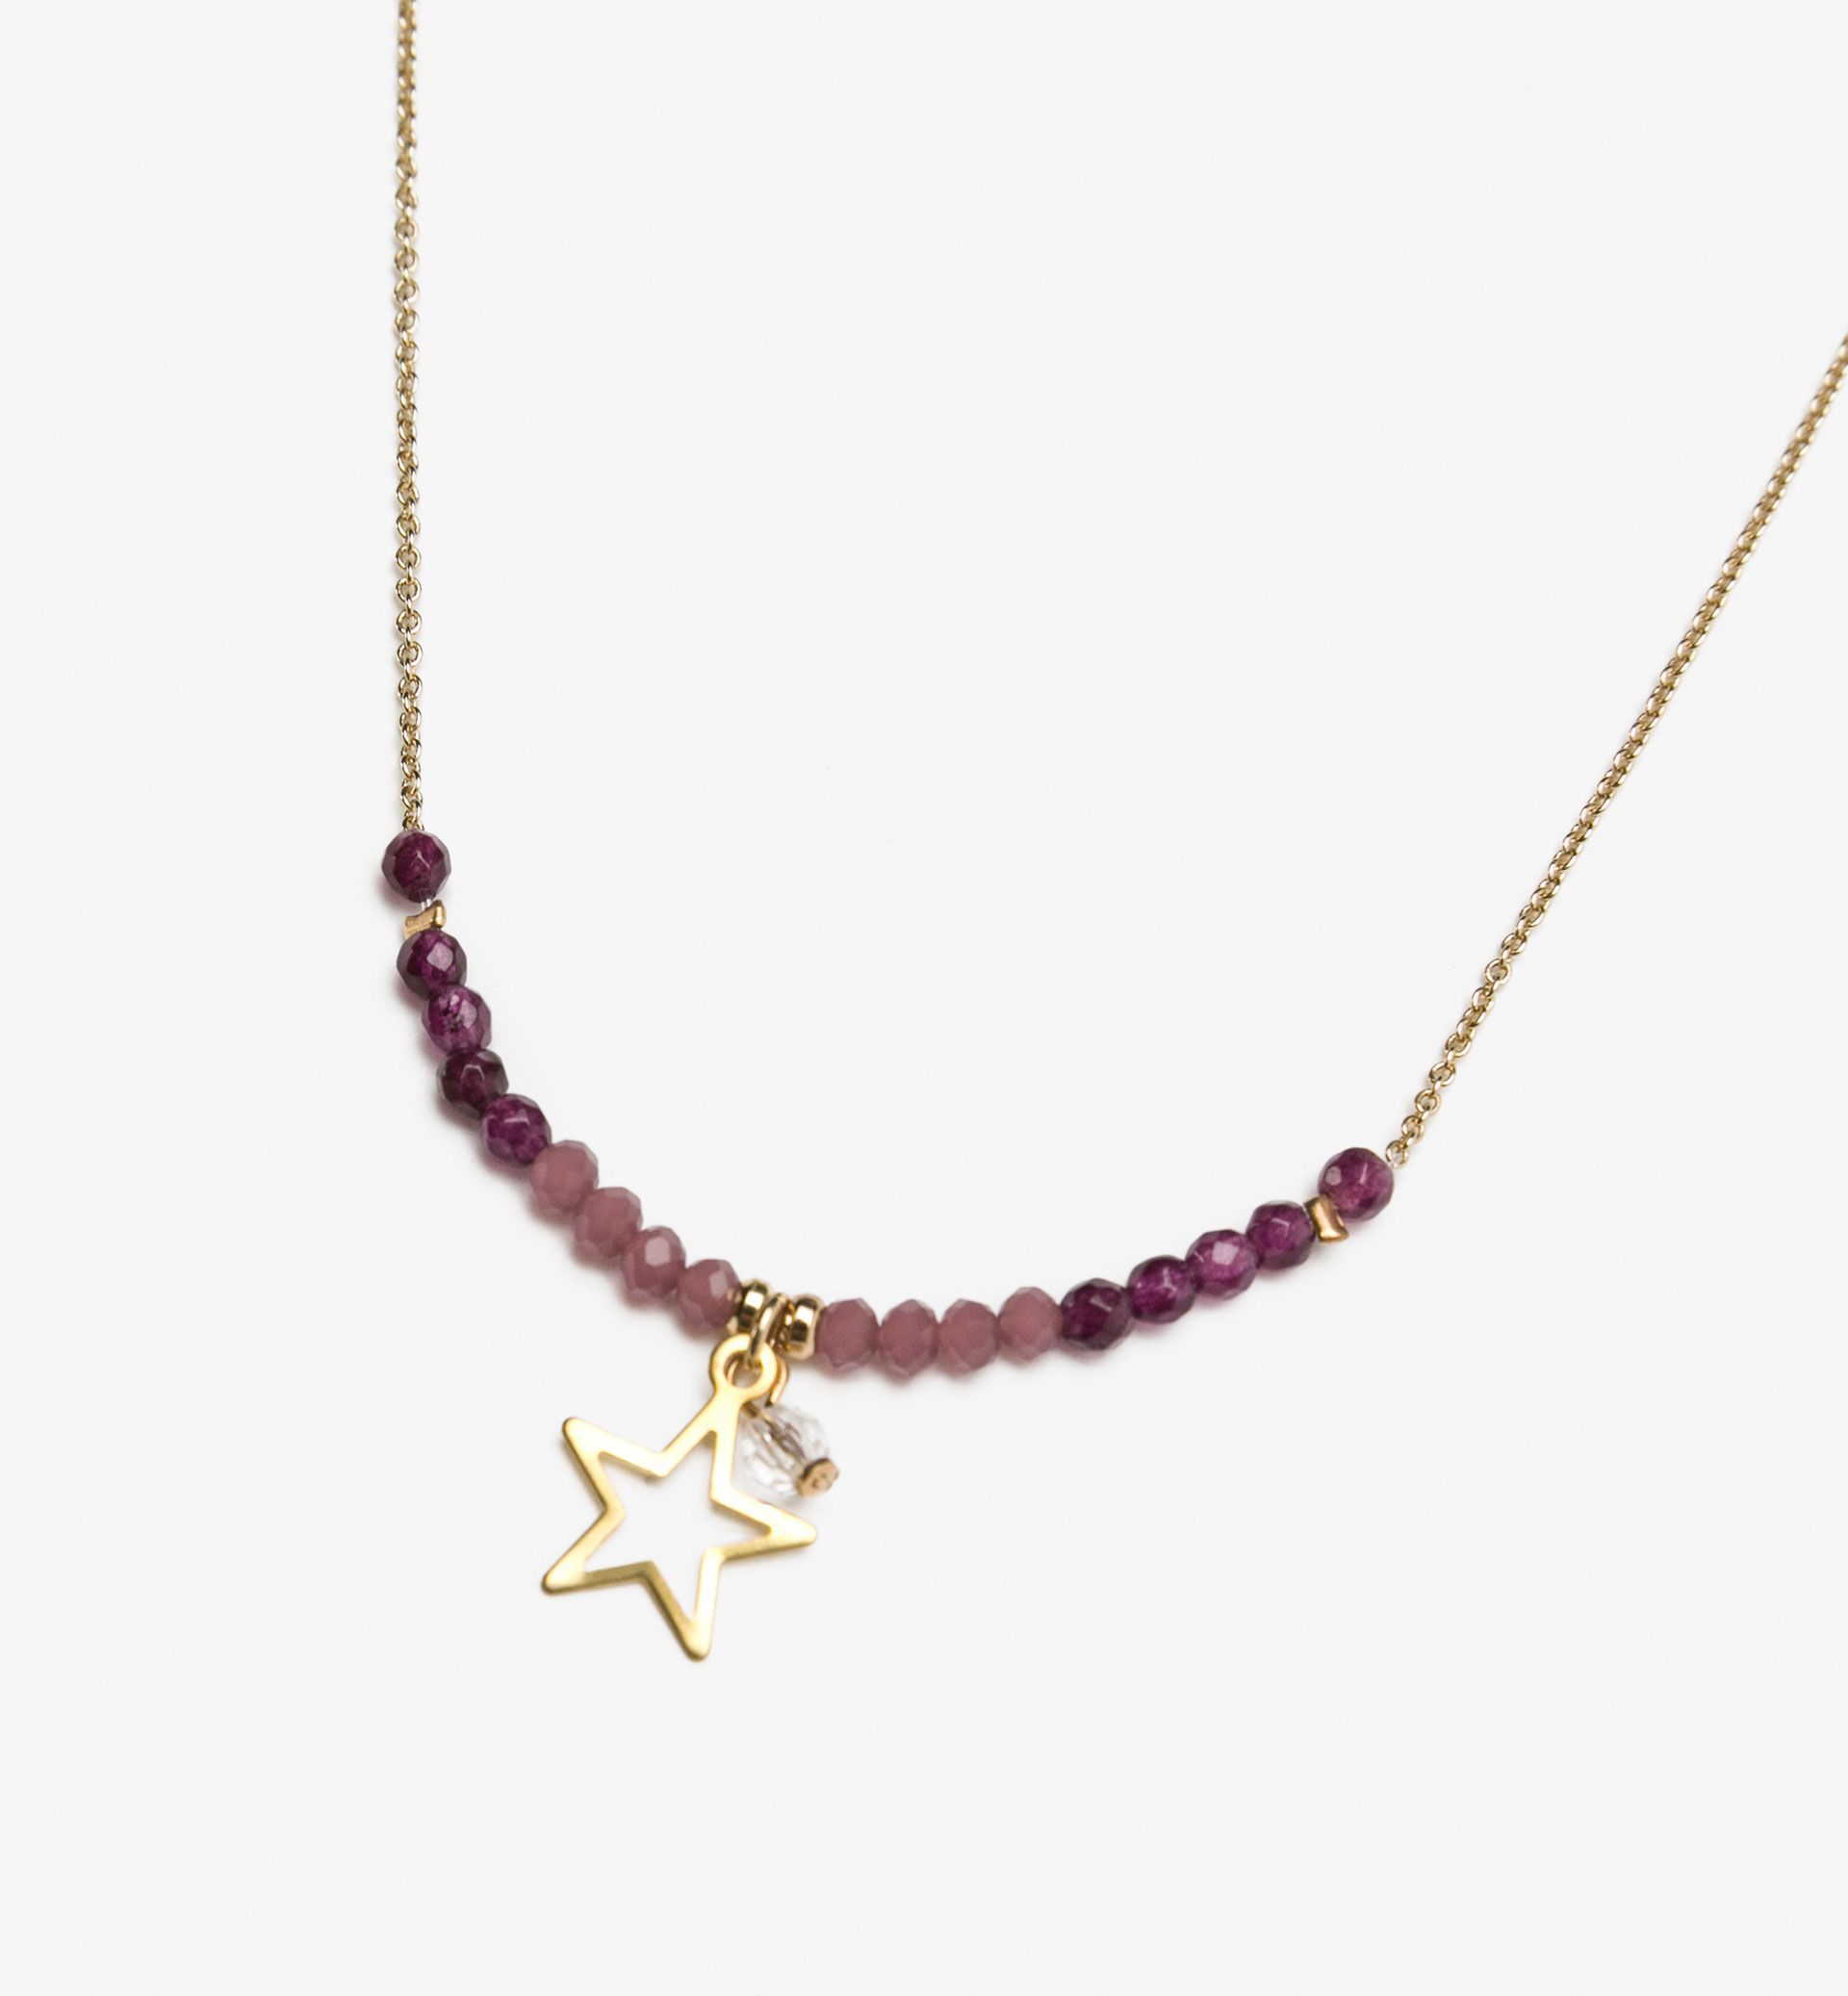 STAR DETAIL NECKLACE